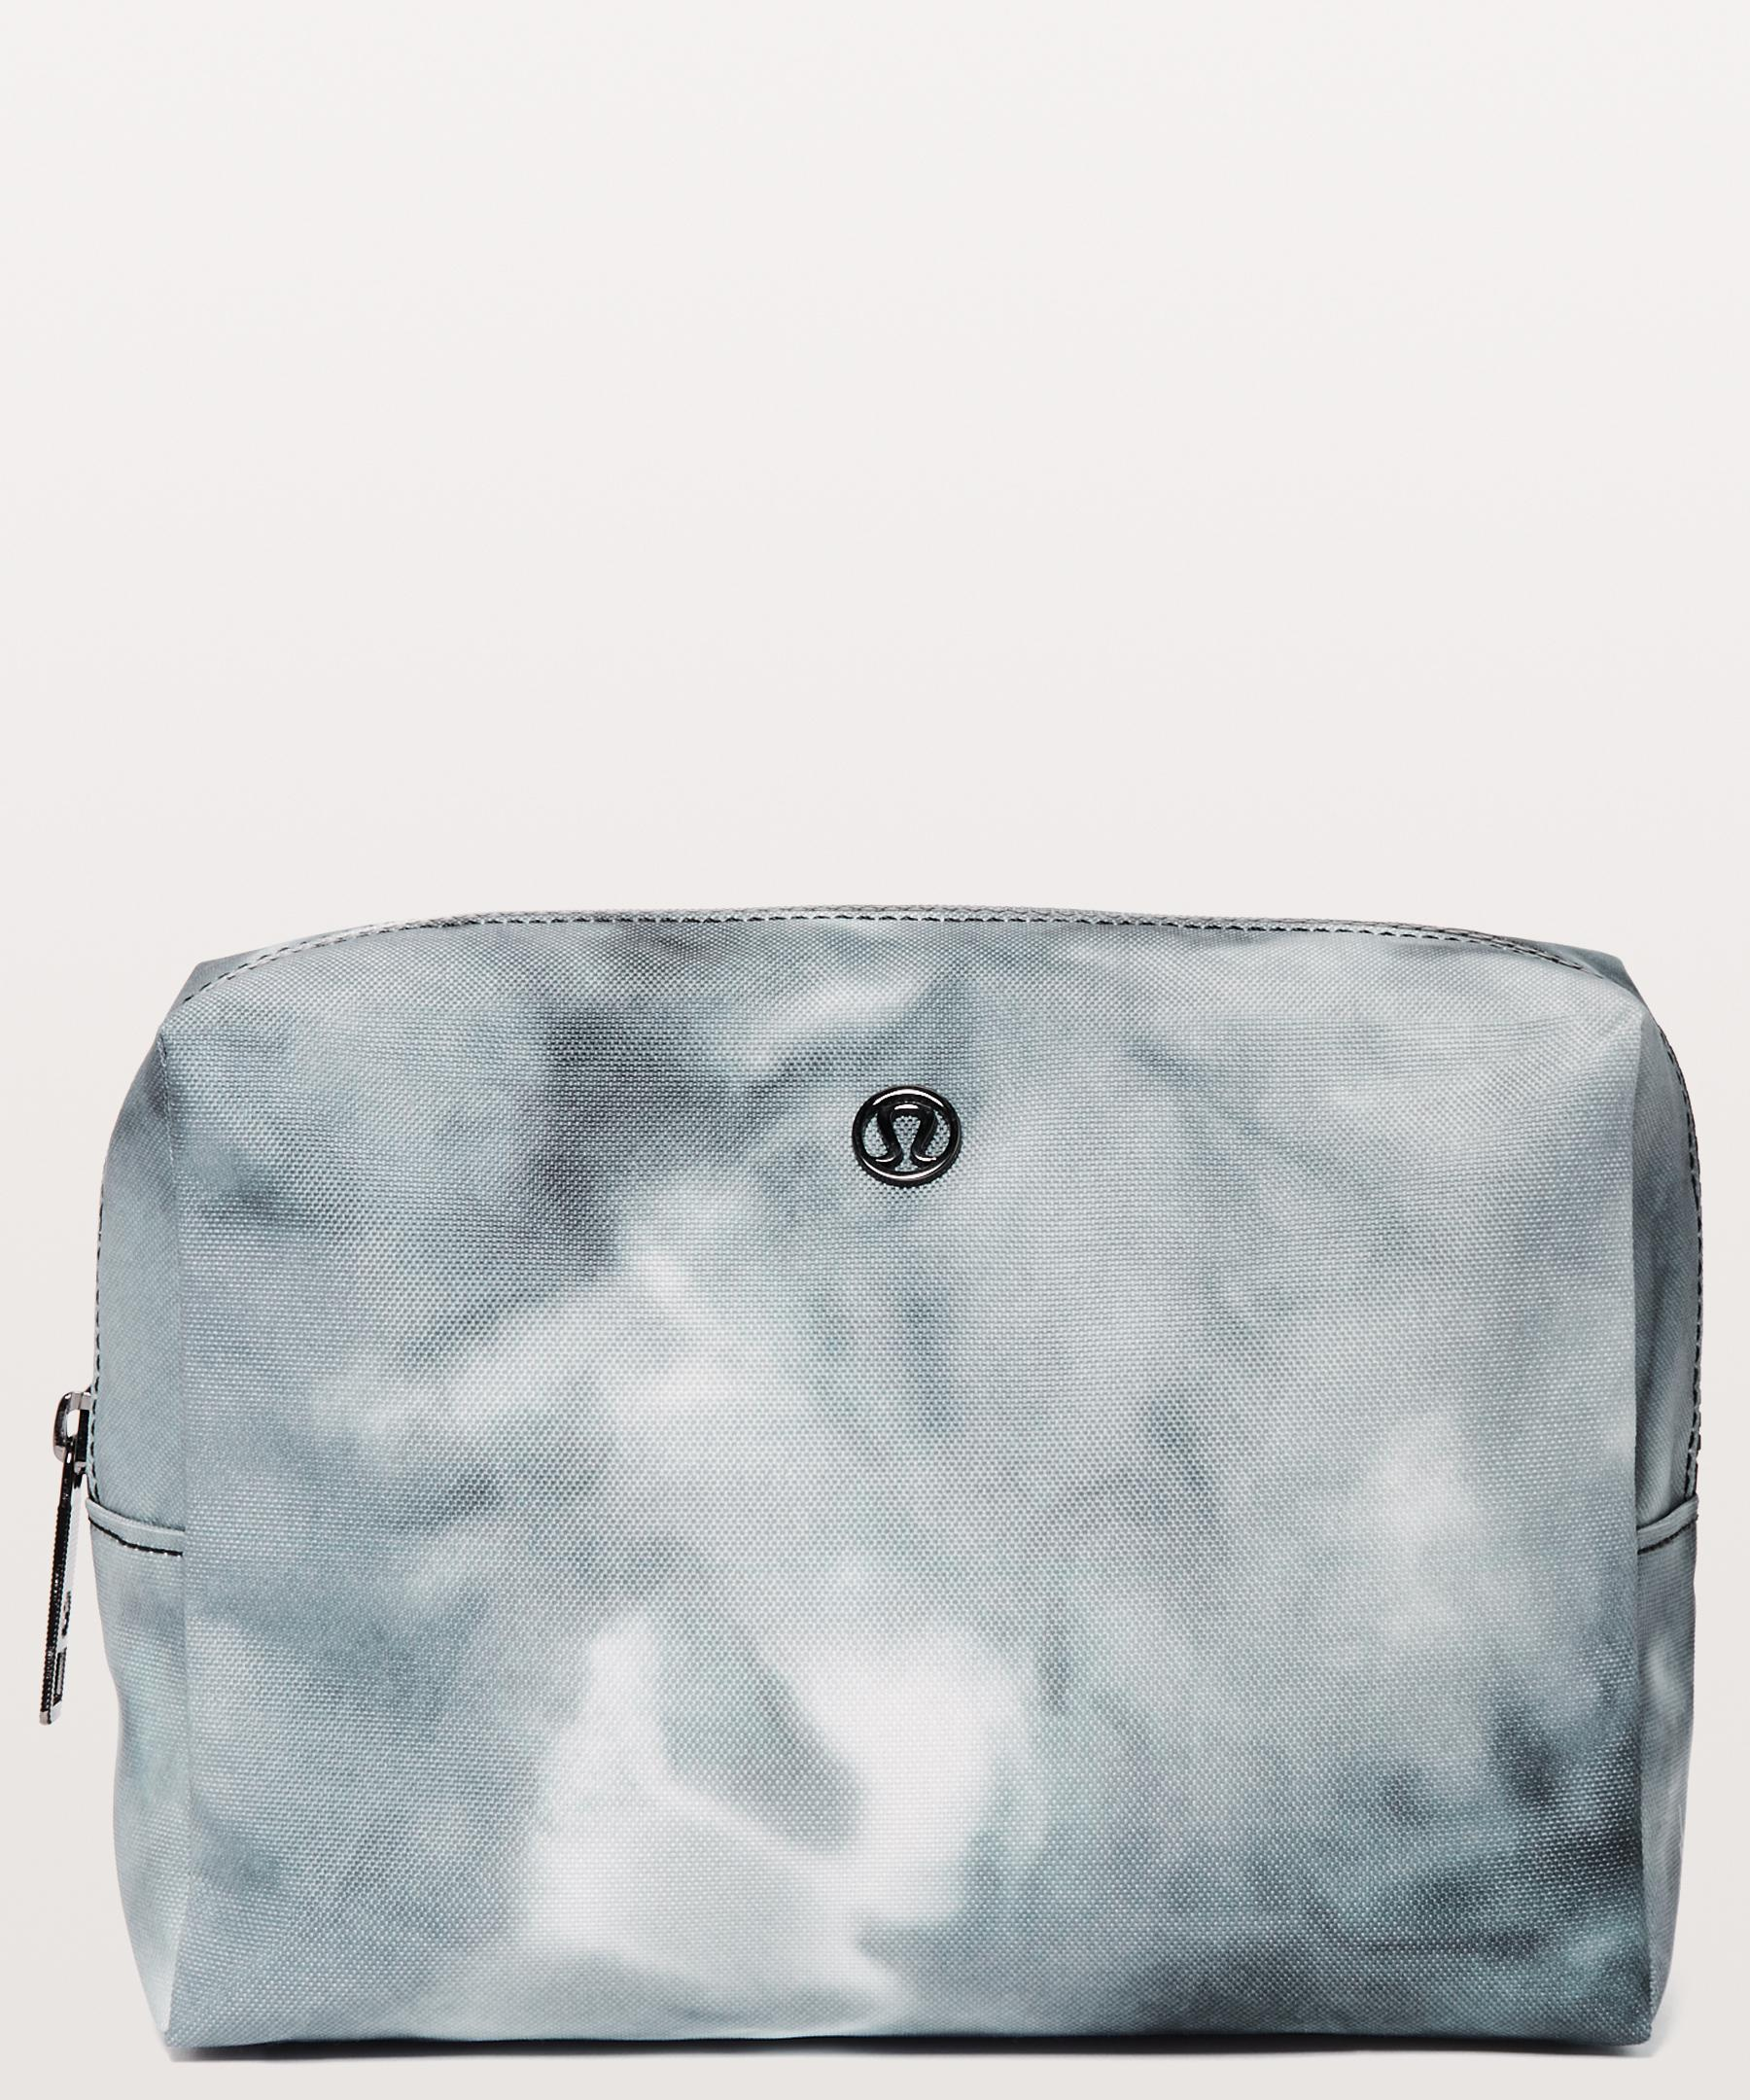 Lyst - lululemon athletica All Your Small Things Pouch  4l in Gray ... f2cf160649cd3